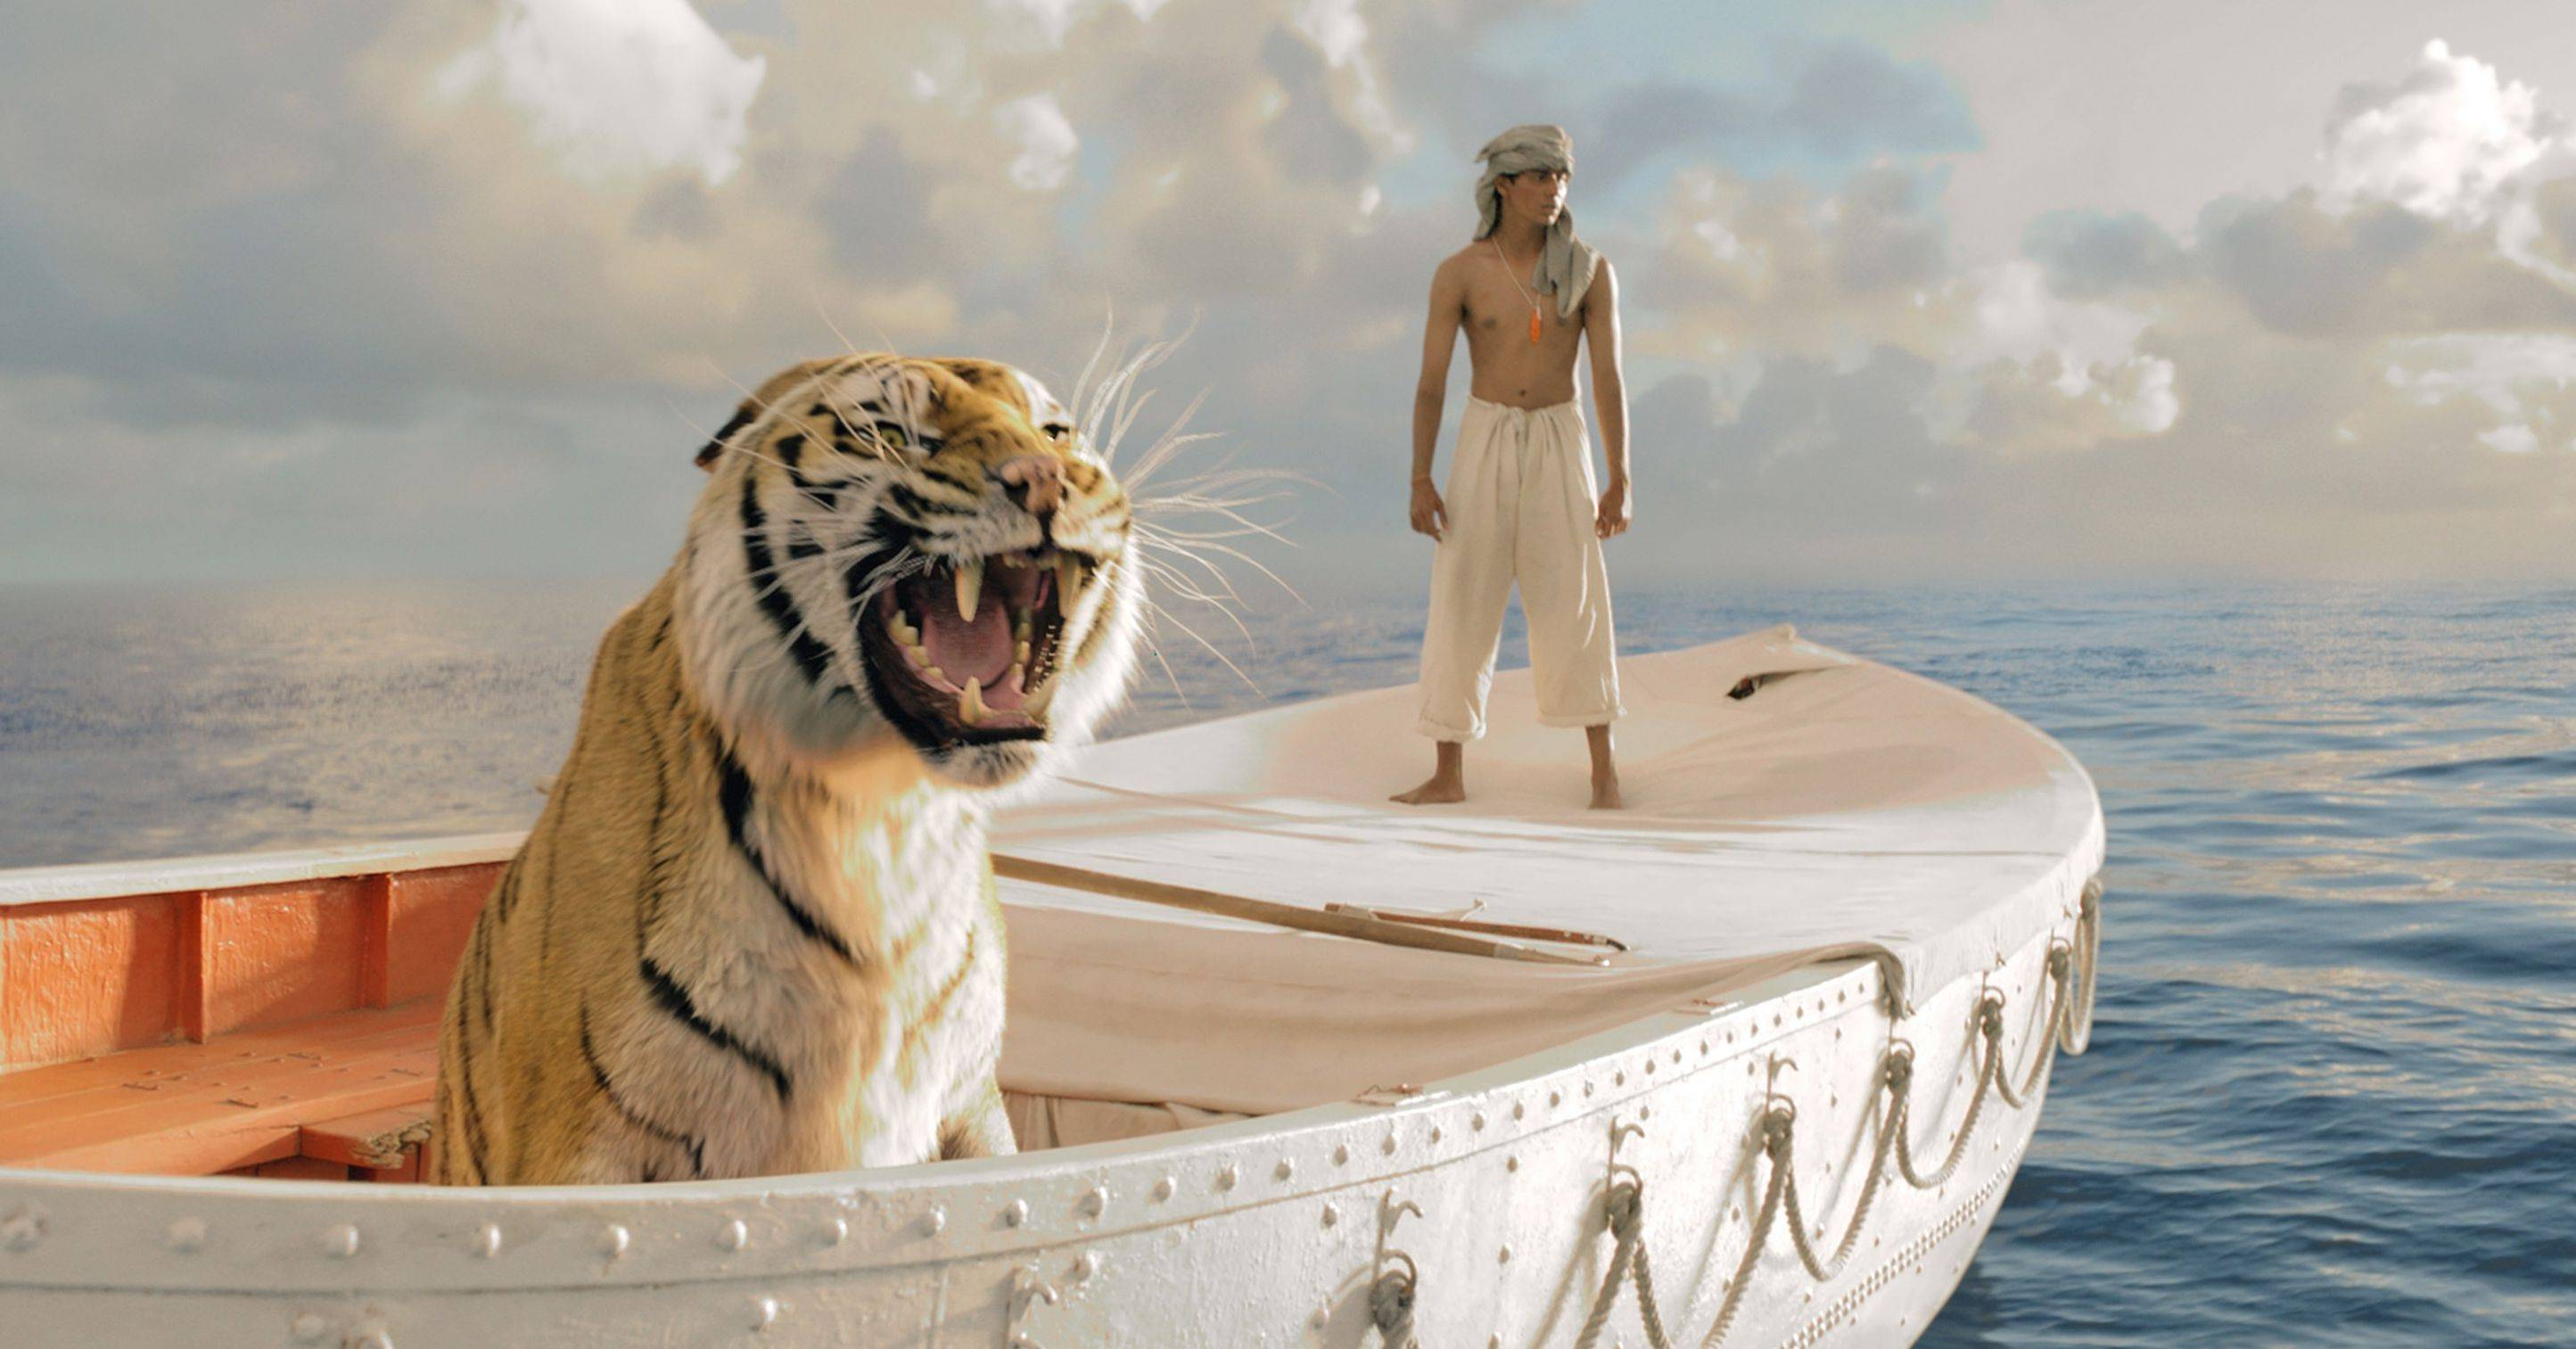 Ang Lee's 'Life of Pi' a rare, wondrous delight